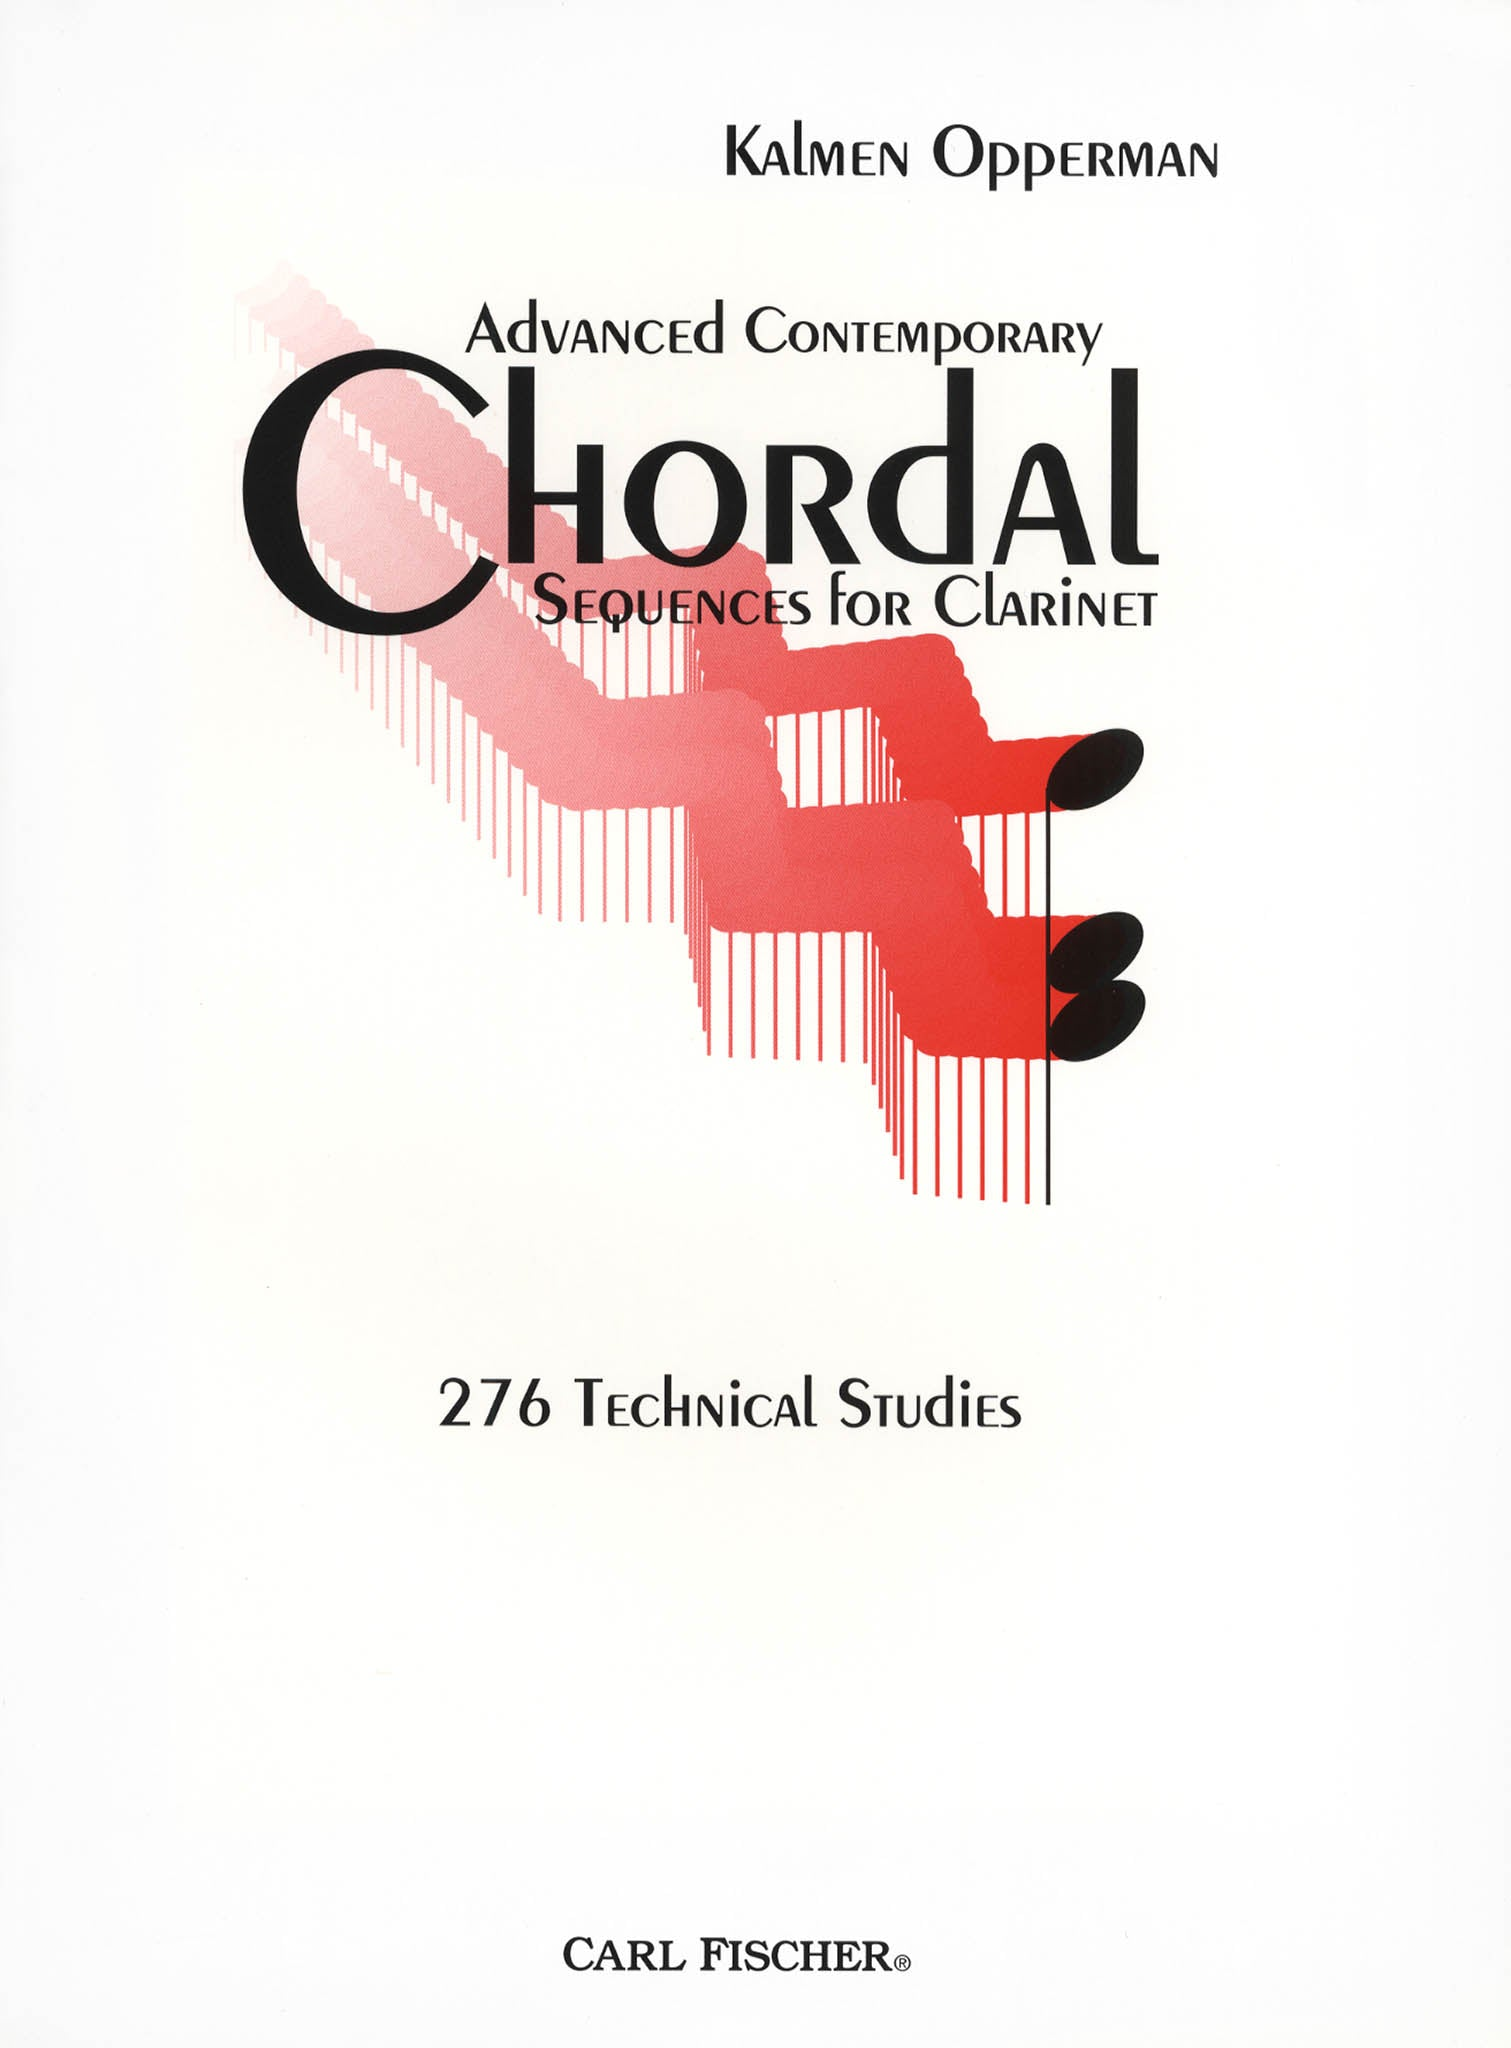 Advanced Contemporary Chordal Sequences for Clarinet Cover